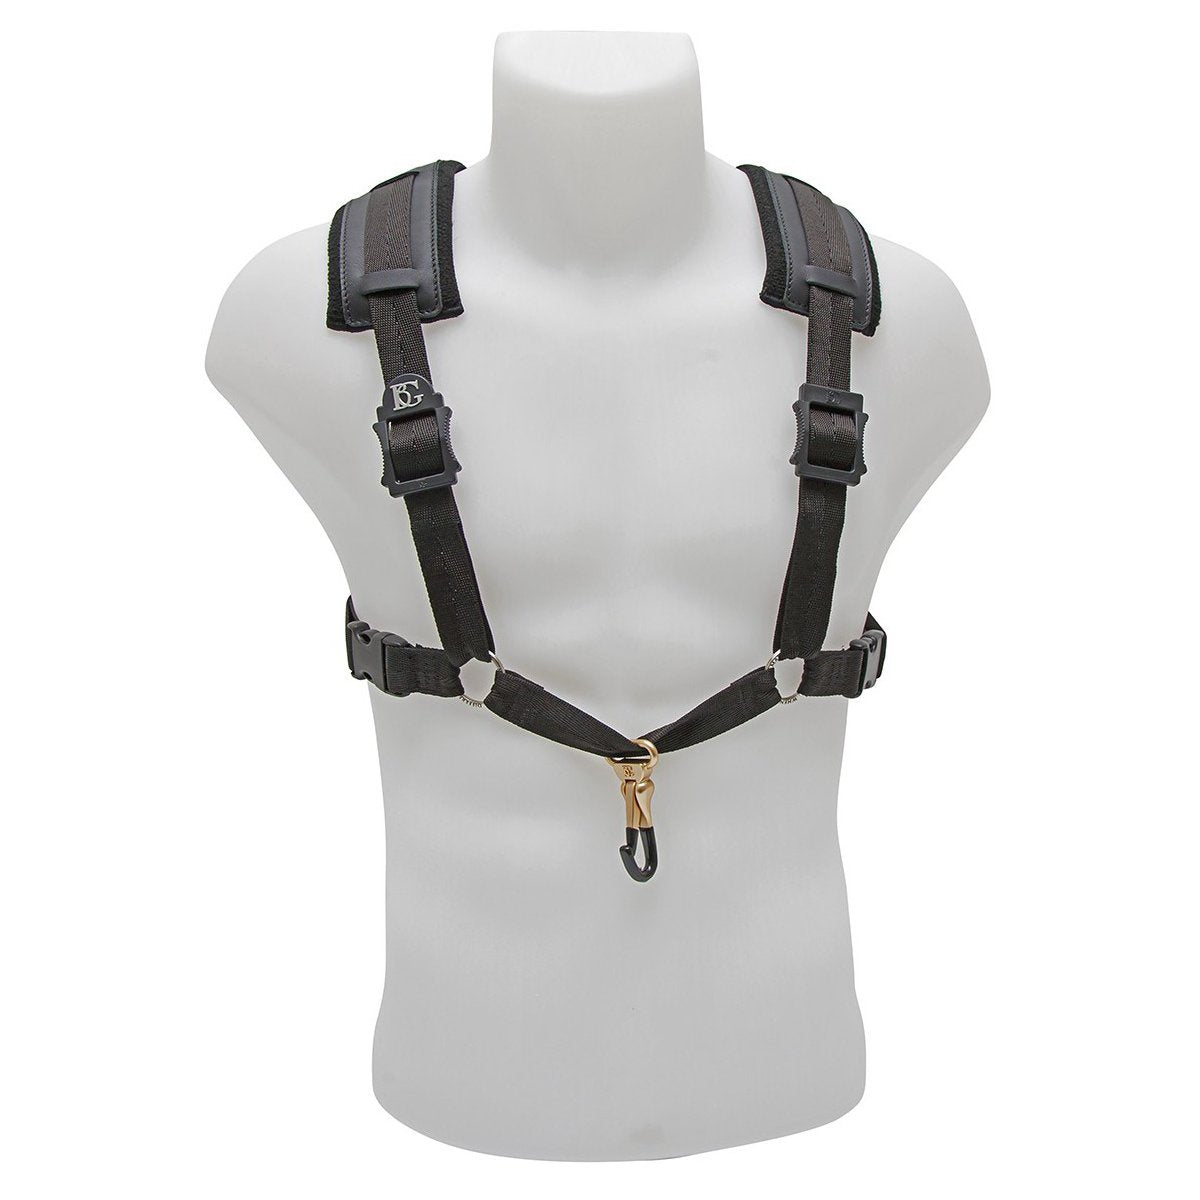 BG France - Comfort Harnesses for Saxophone (Alto/Tenor/Baritone)-Accessories-BG France-Black-Music Elements